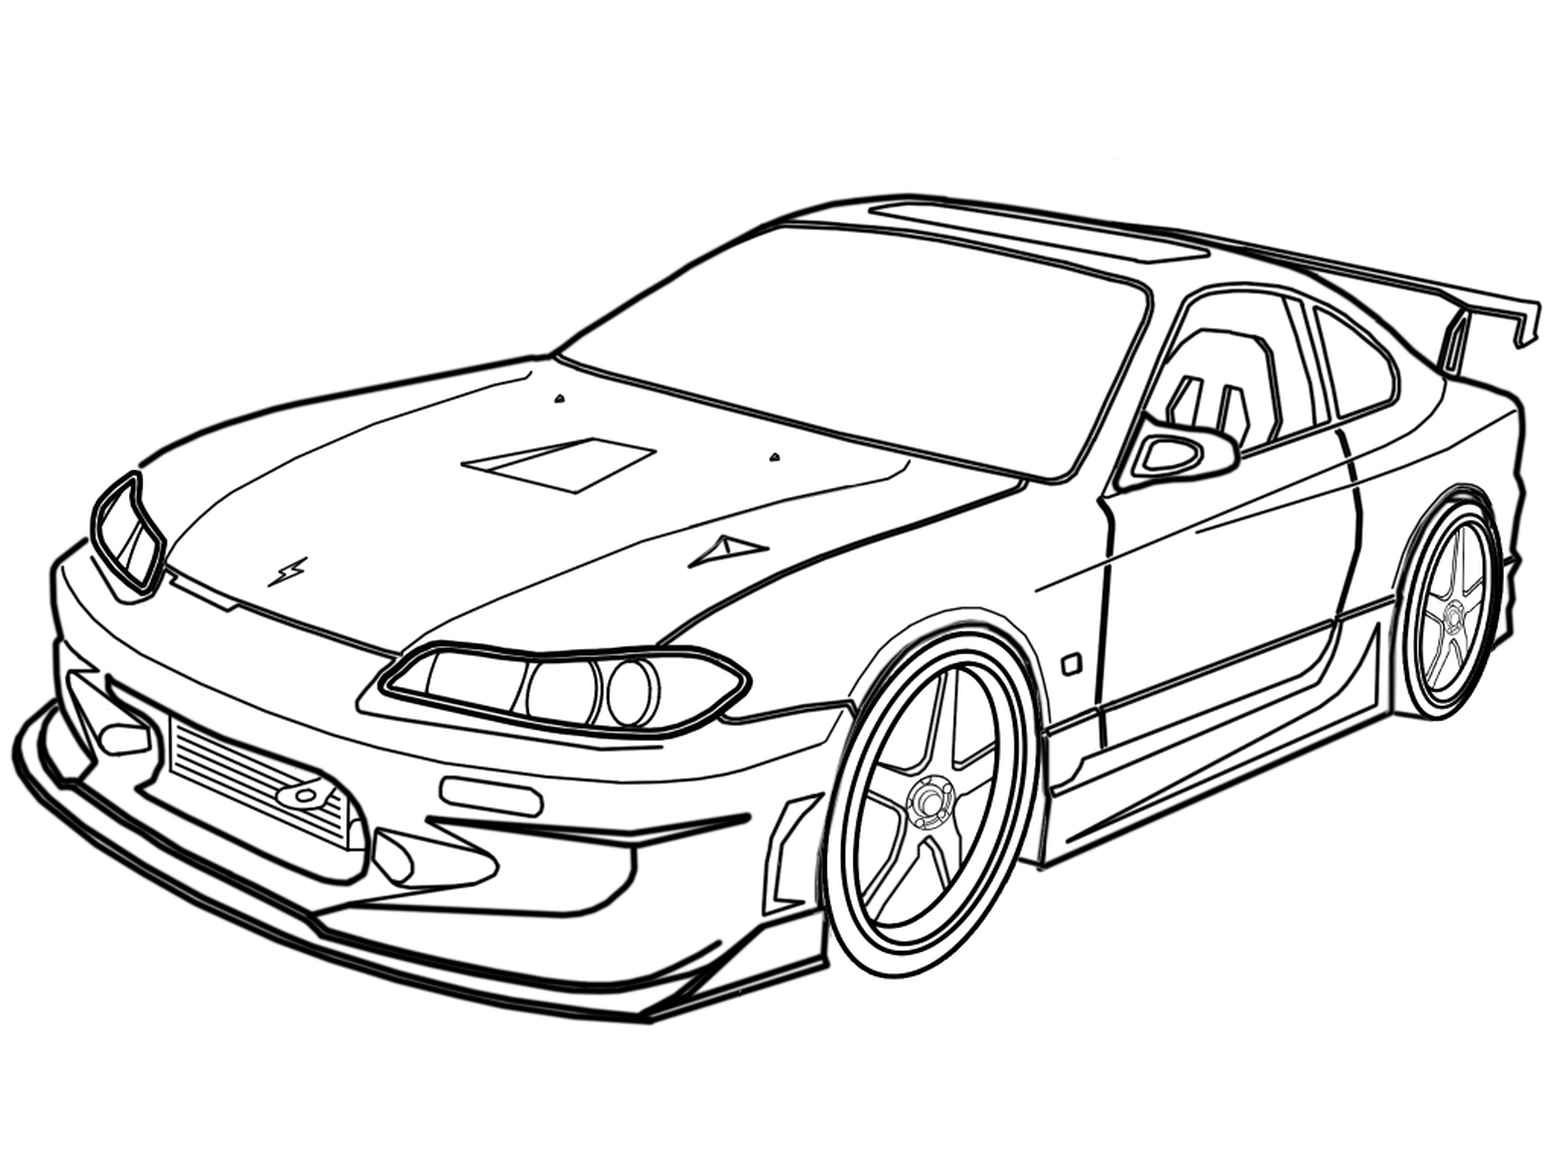 Legendary Supra Coloring Page